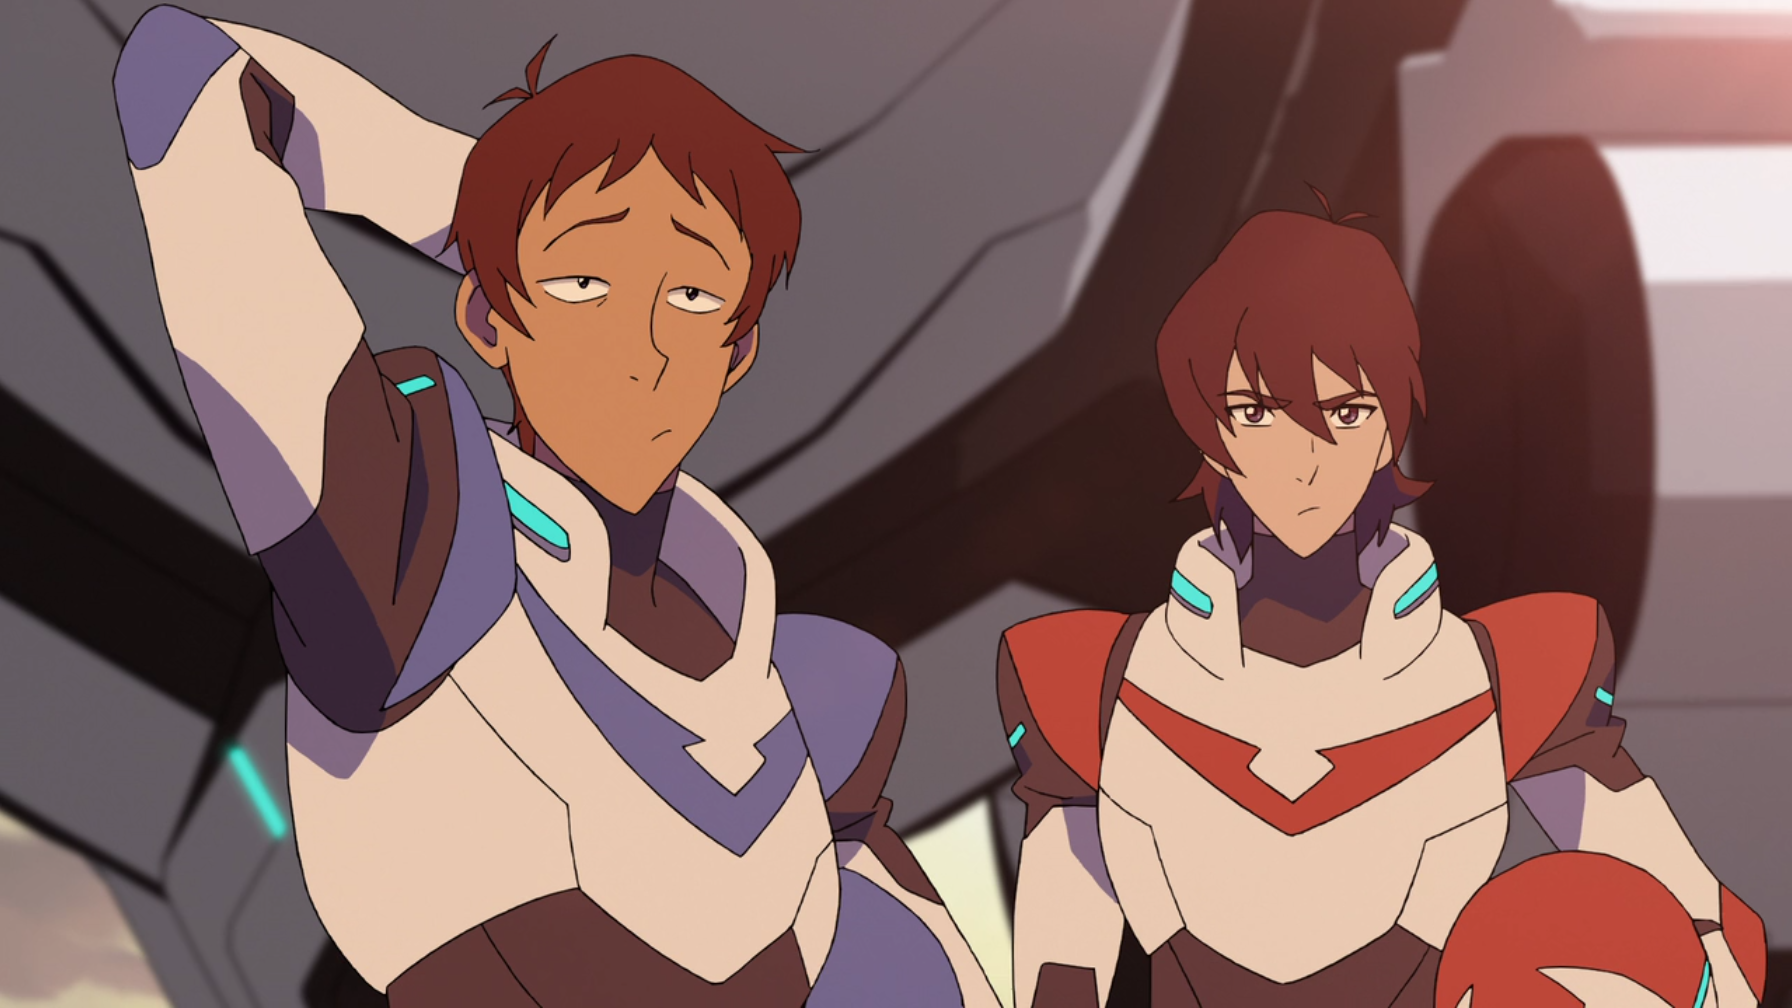 https://vignette.wikia.nocookie.net/voltron/images/8/82/221j._Lance_and_Keith_at_end_of_first_Voltron_battle.png/revision/latest?cb=20160809223950